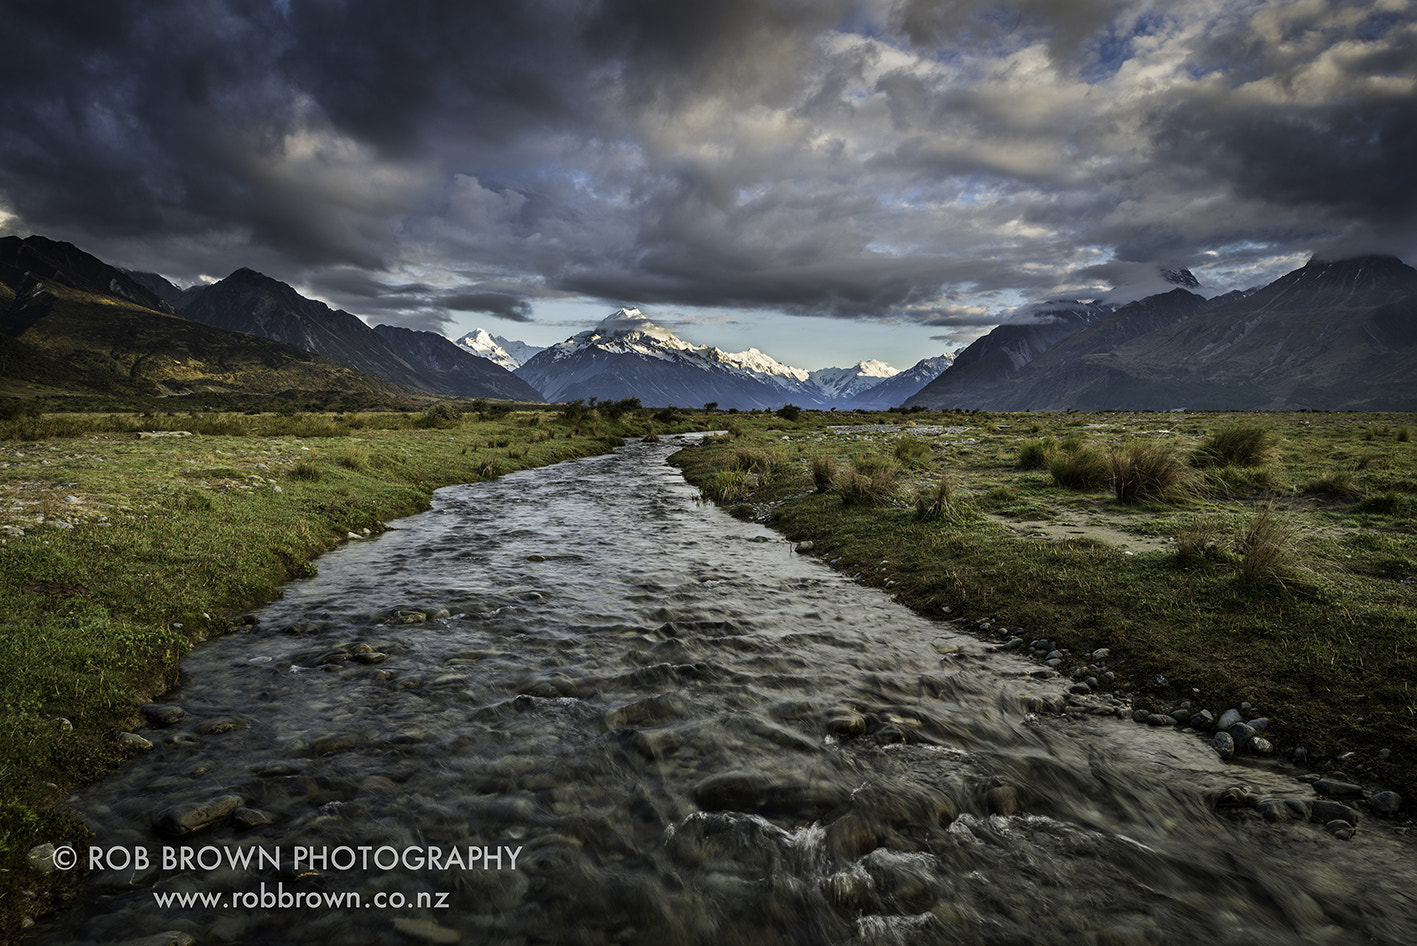 Photograph Aoraki/Mt Cook by Rob Brown on 500px